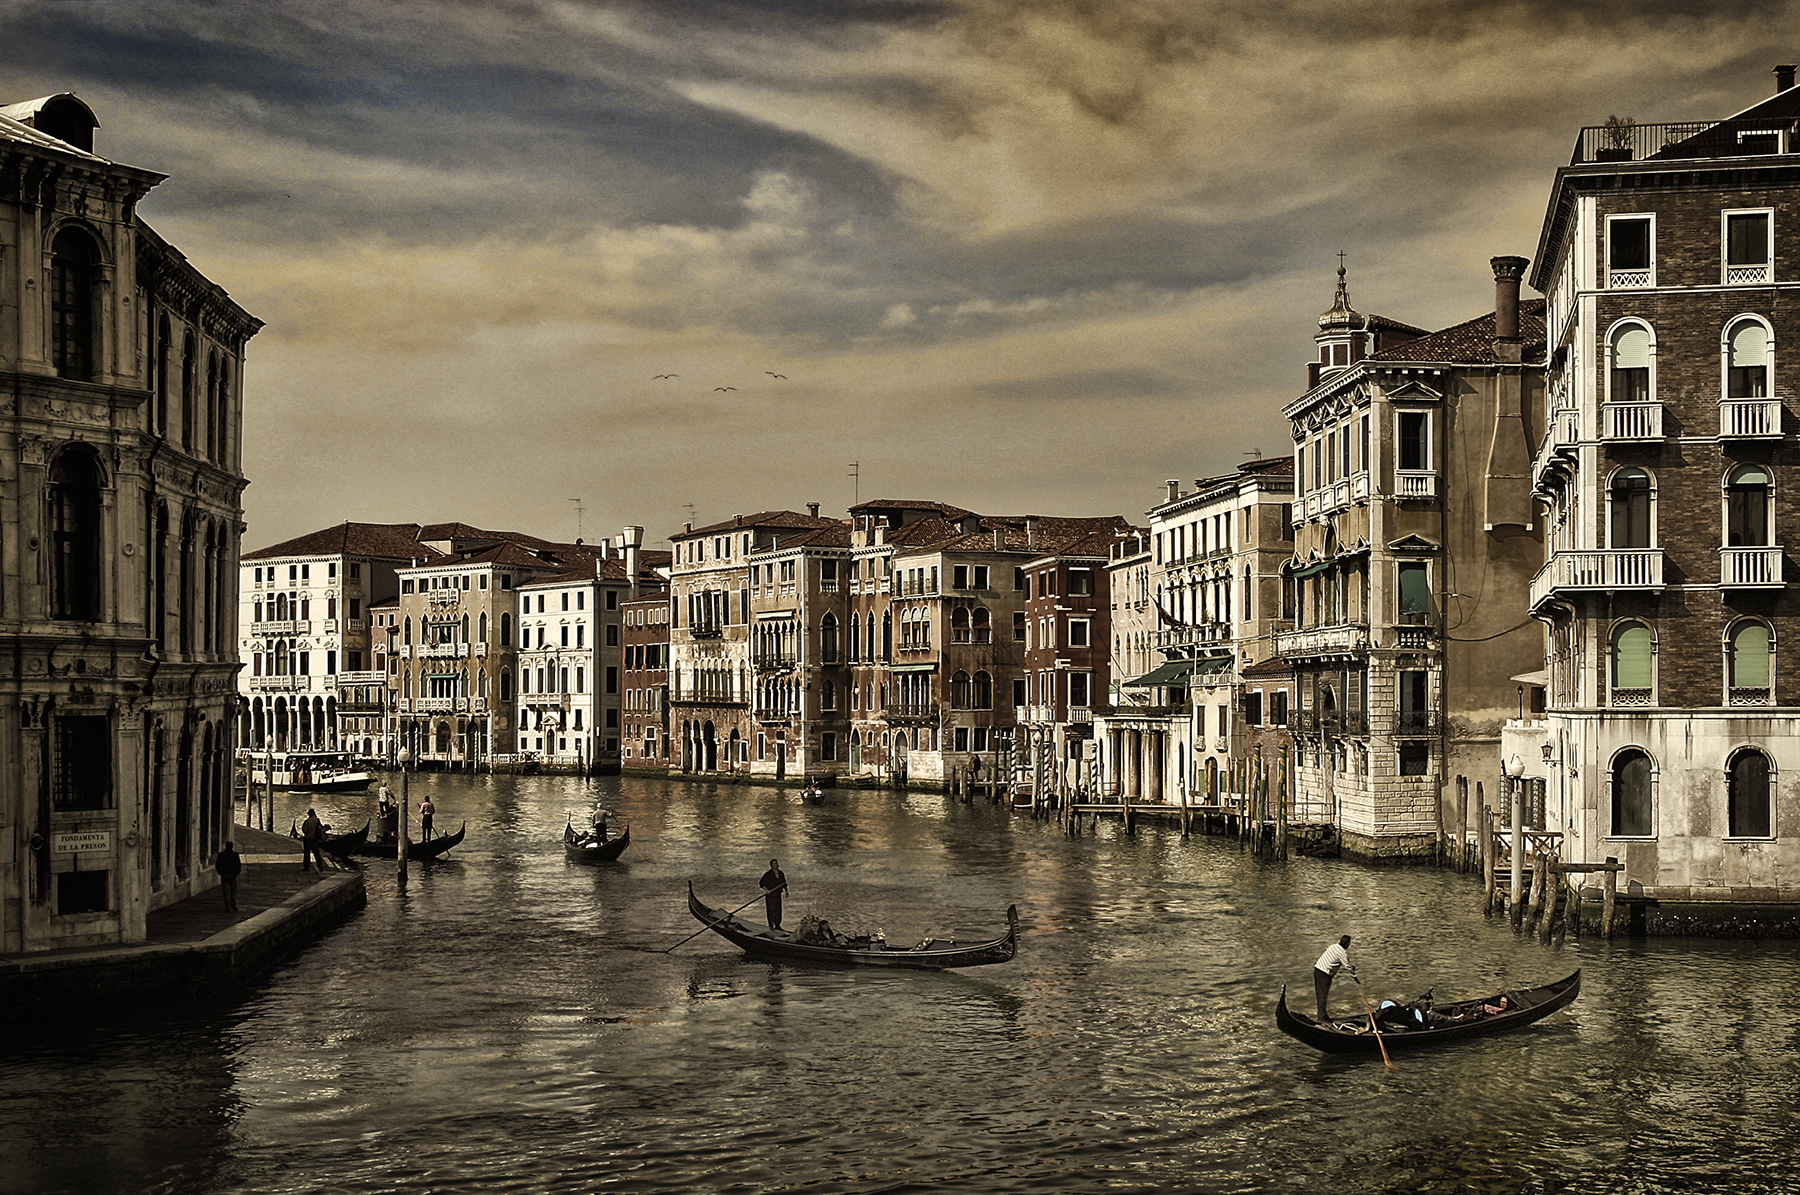 Favourite Shot 2 - The Grand Canal from the northern side of the Rialto Bridge